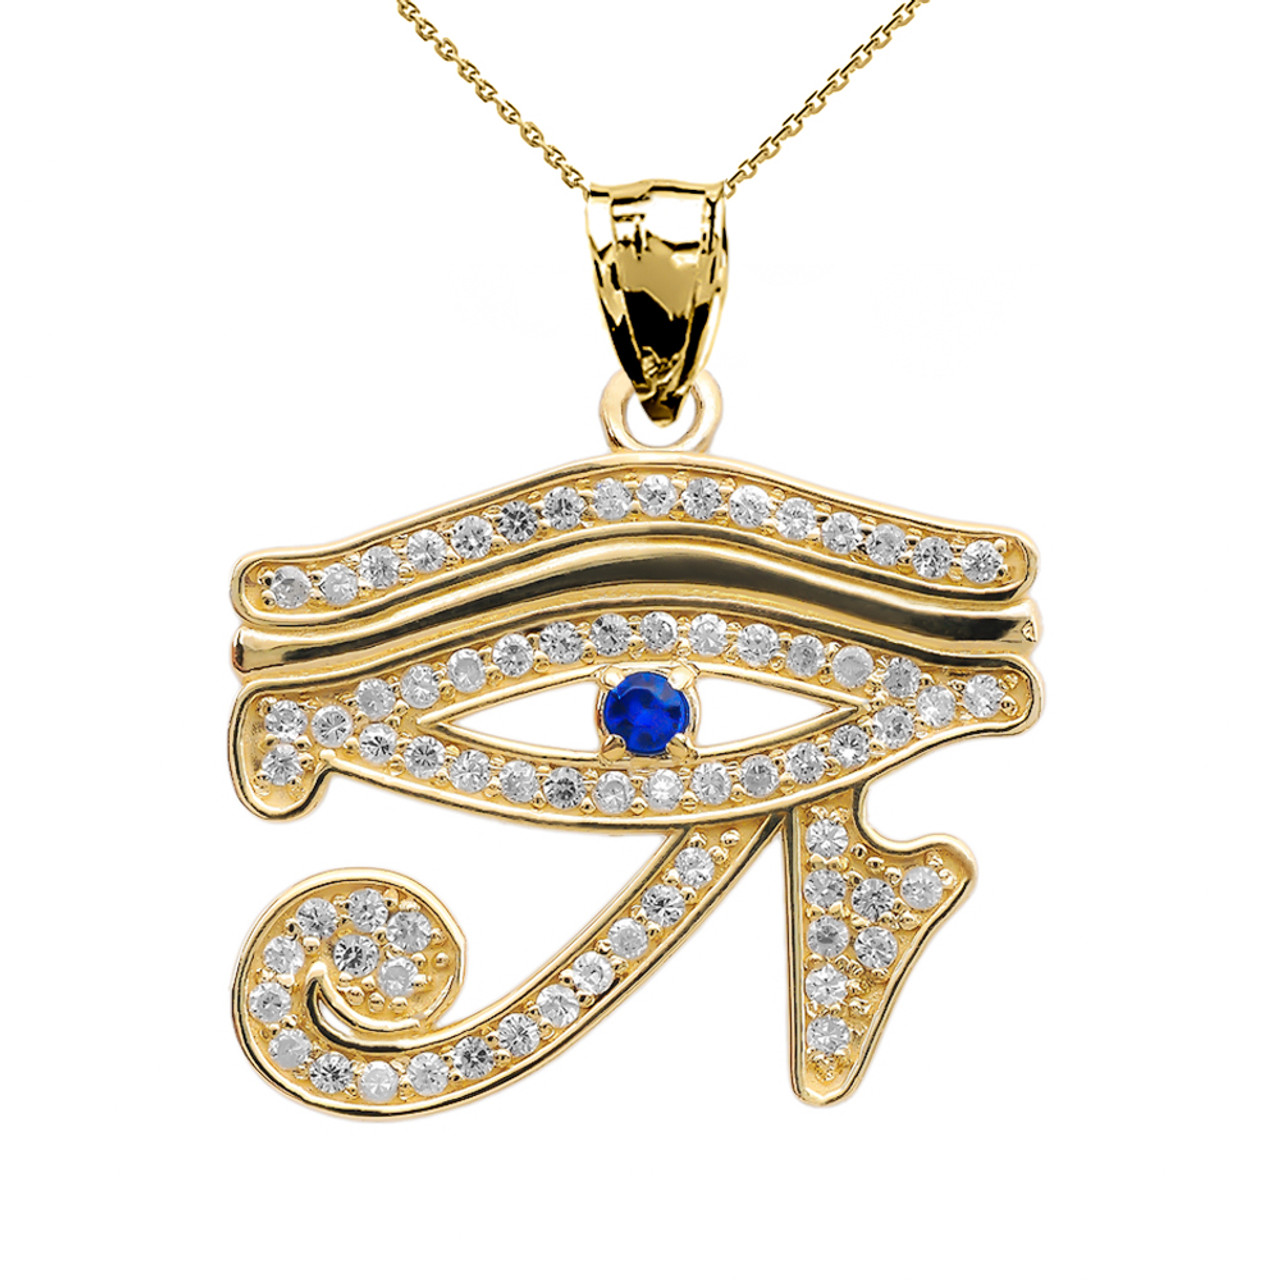 Yellow gold diamond and sapphire eye of horus pendant necklace eye of horus yellow gold diamond and sapphire pendant necklace aloadofball Choice Image